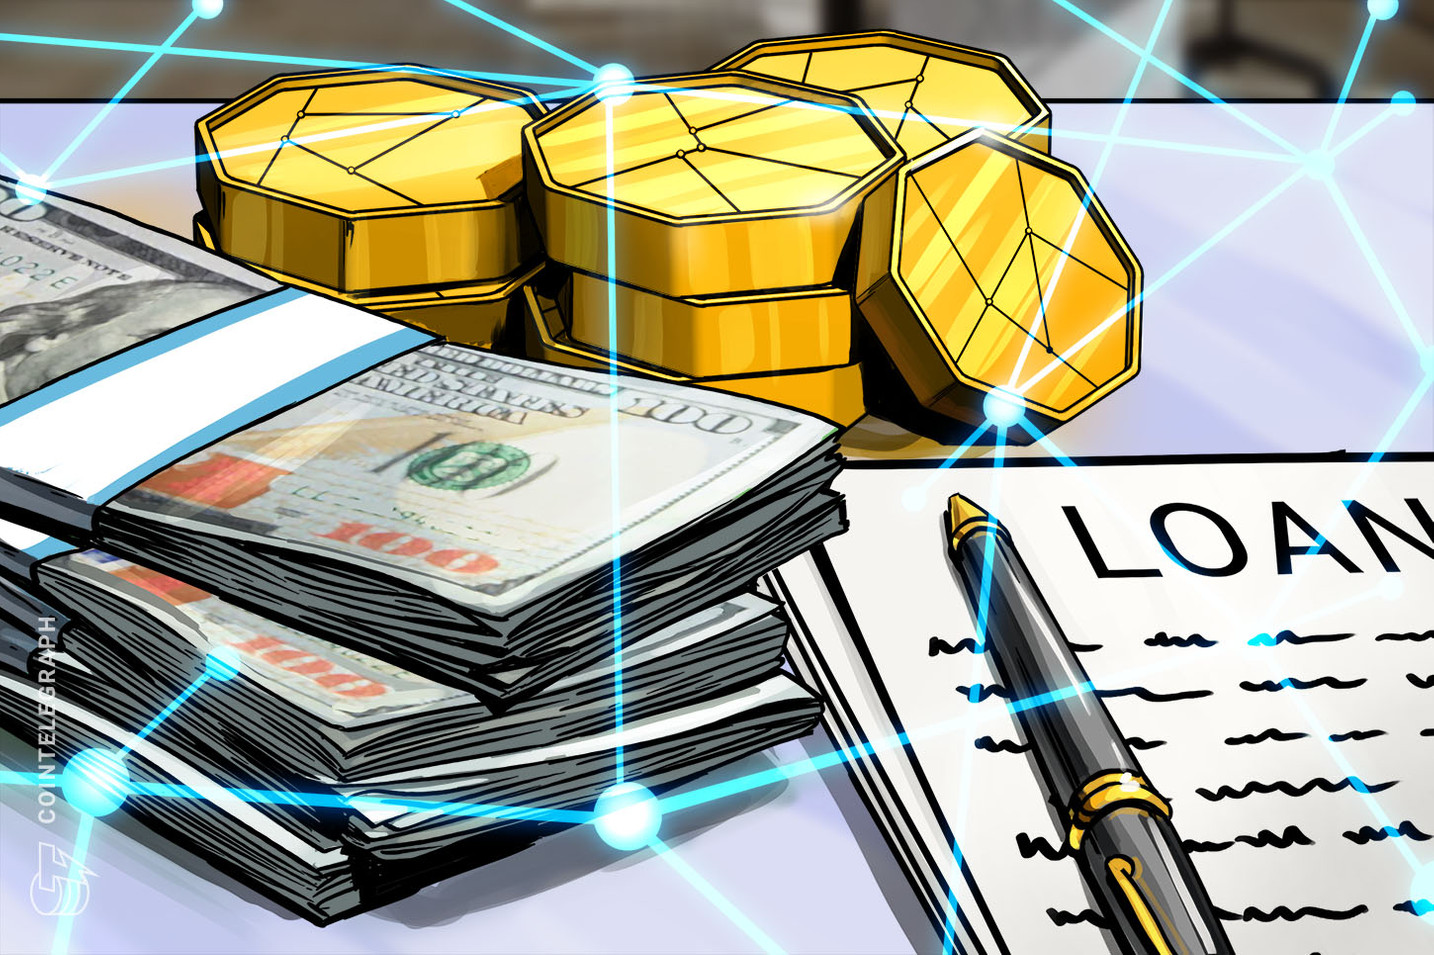 Korea's Oldest Bank Launches National Blockchain-Based Loan Platform